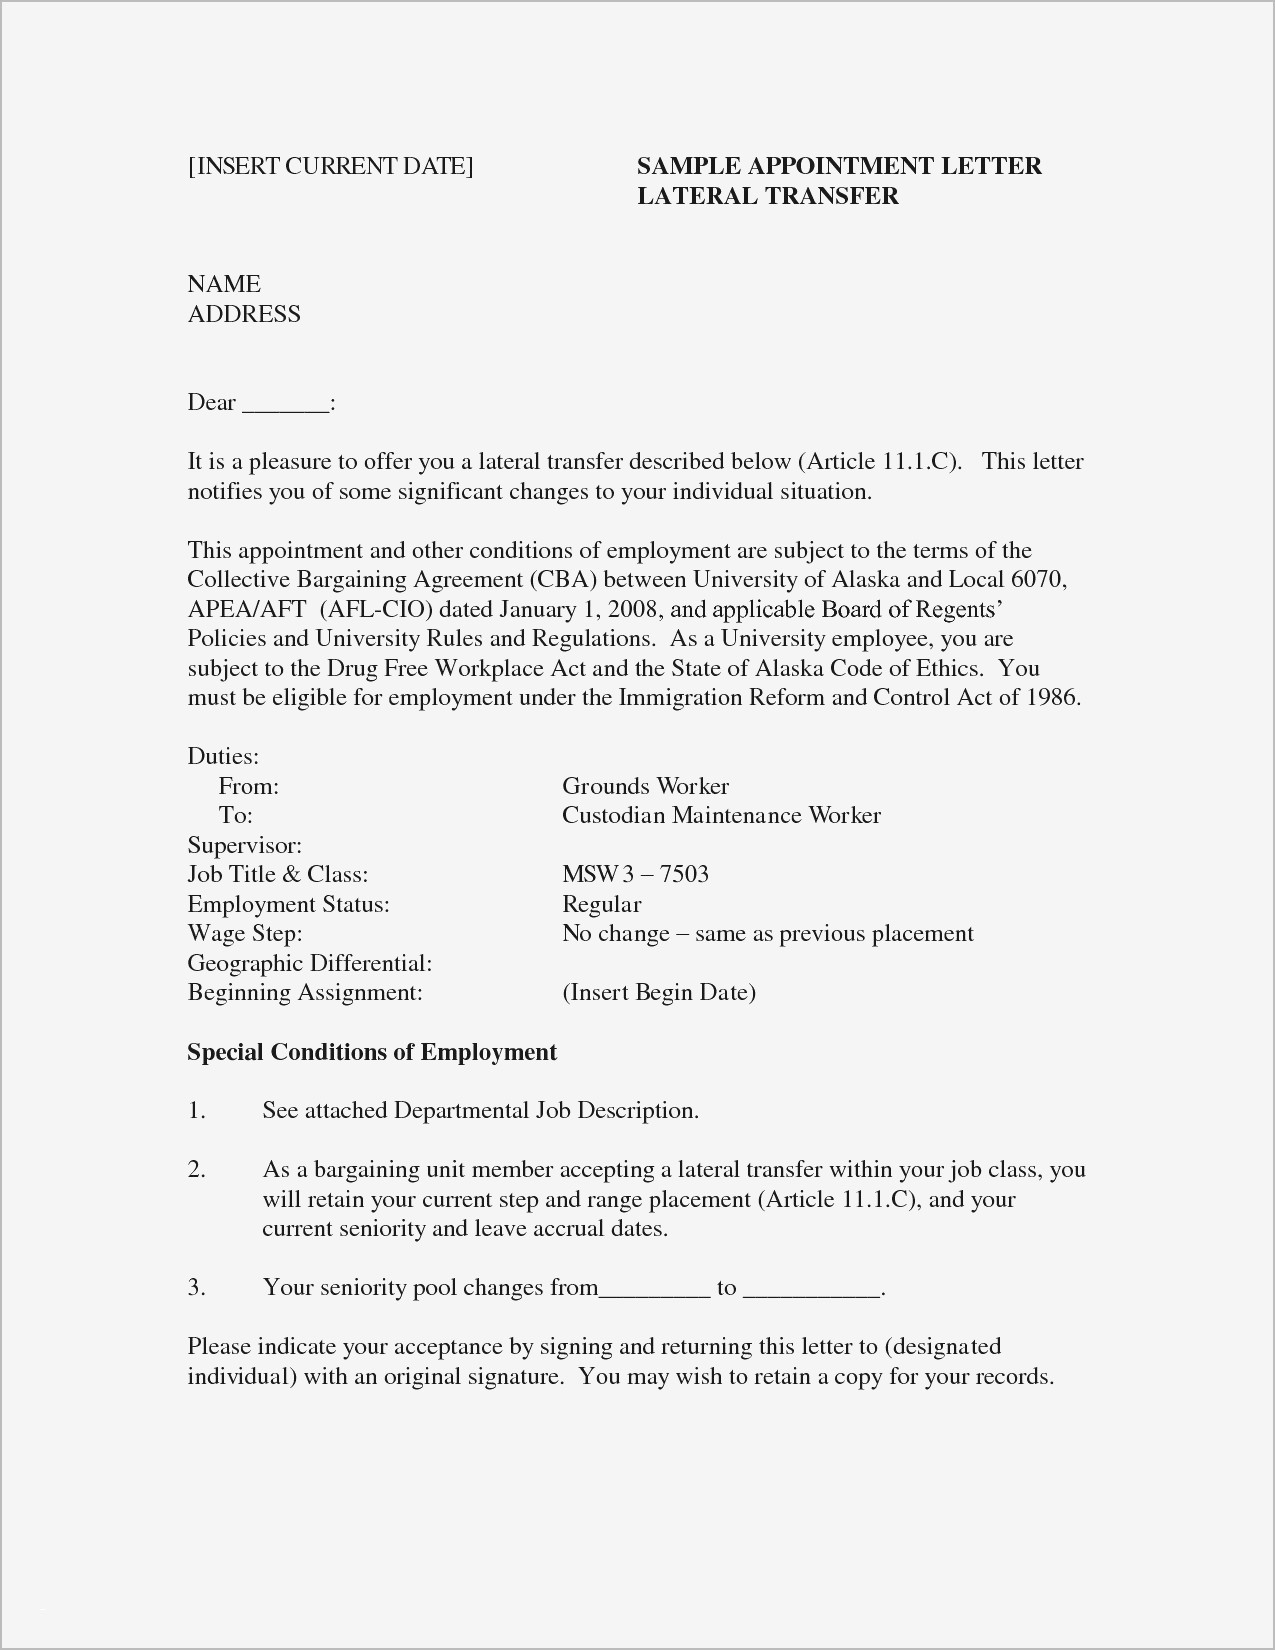 letter to parents from teacher template example-Behavior Letter To Parents From Teacher Template 2018 Math Teacher Resume Valid Math Teacher Resume Best Fresh Resume 0d 13-g